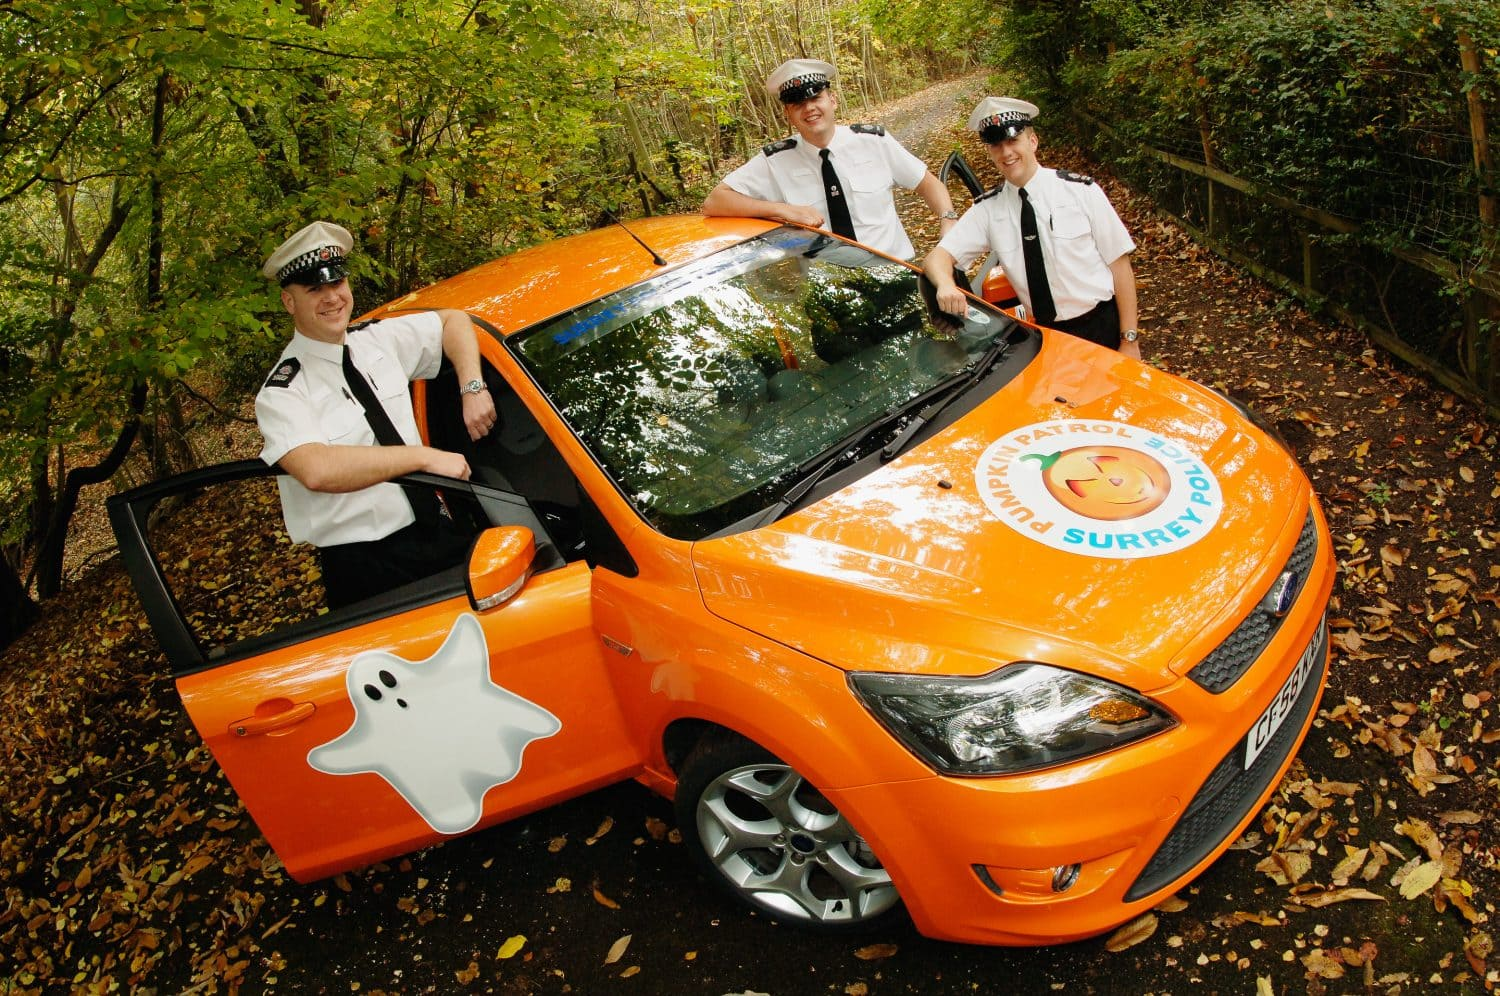 Surrey Police Pumpkin Patrol branded vehicle